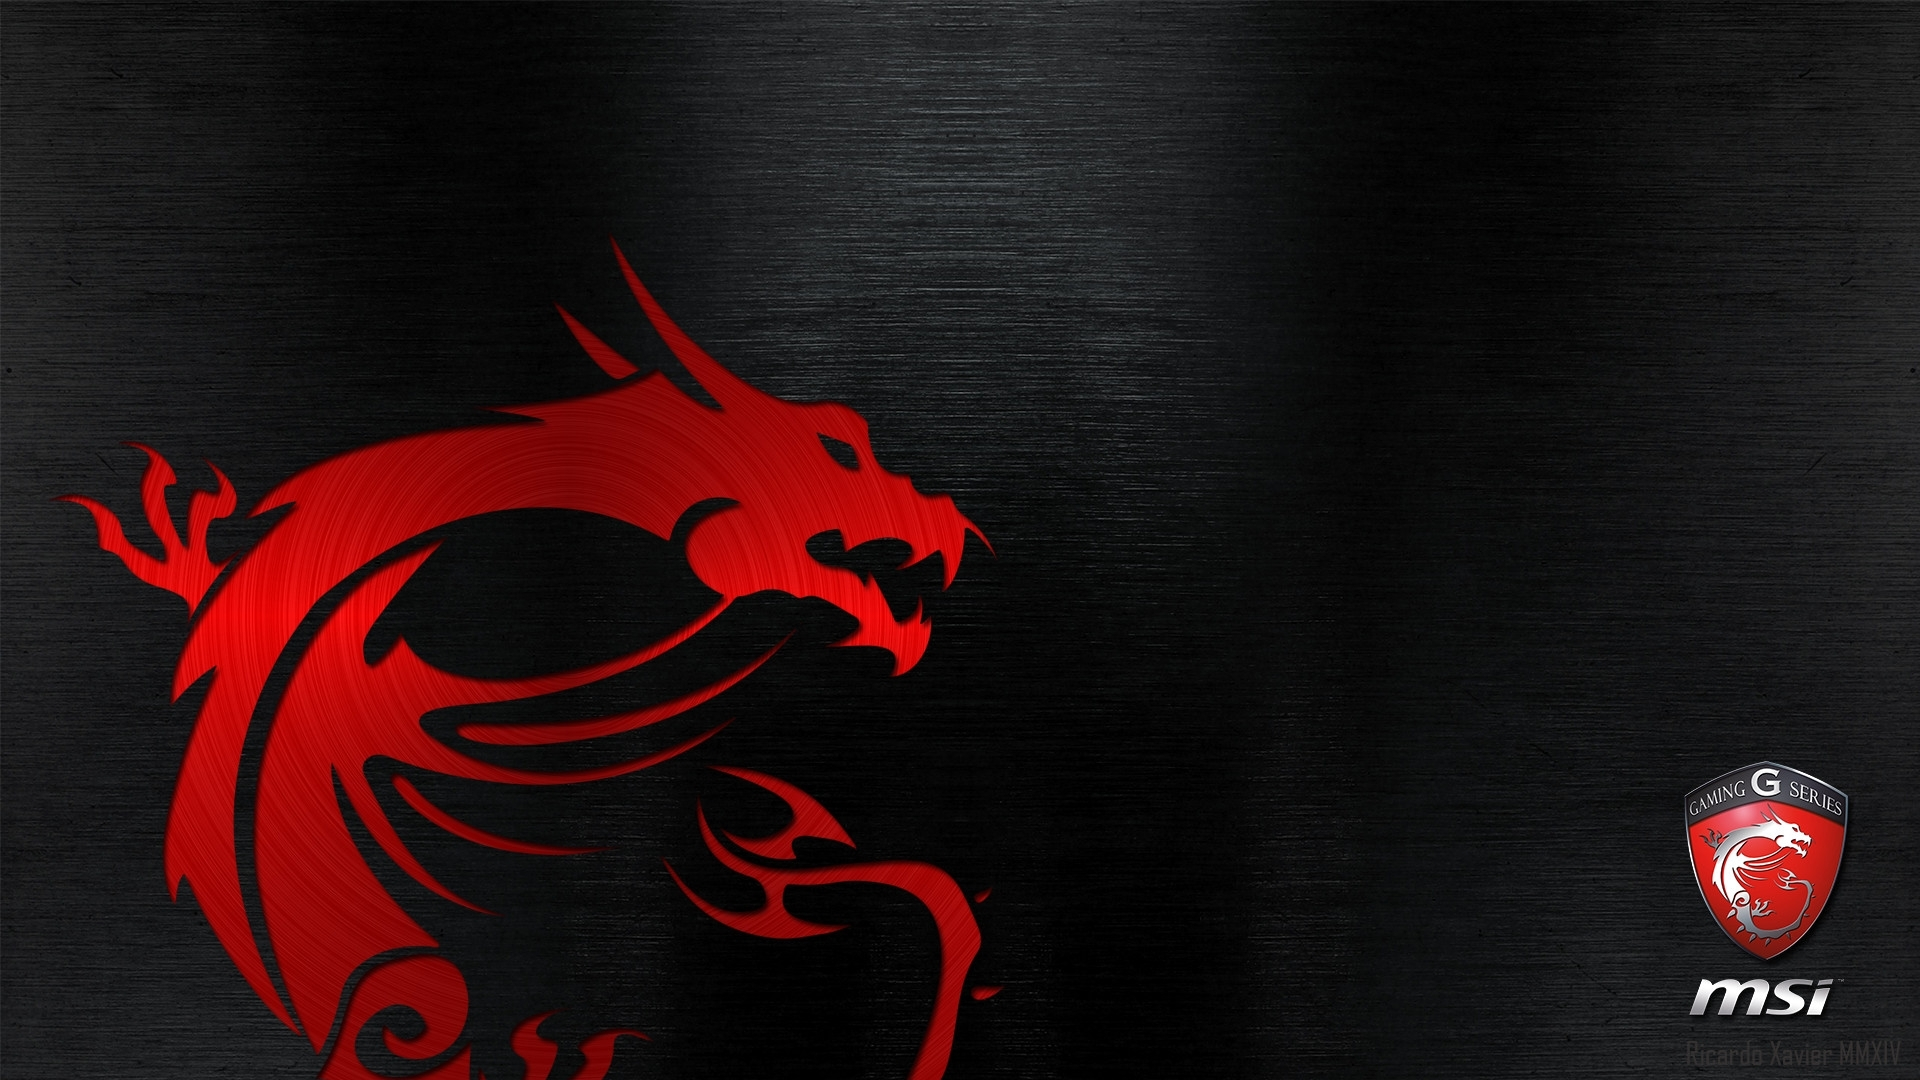 10 Most Popular Msi Dragon Wallpaper Hd FULL HD 1080p For PC Desktop